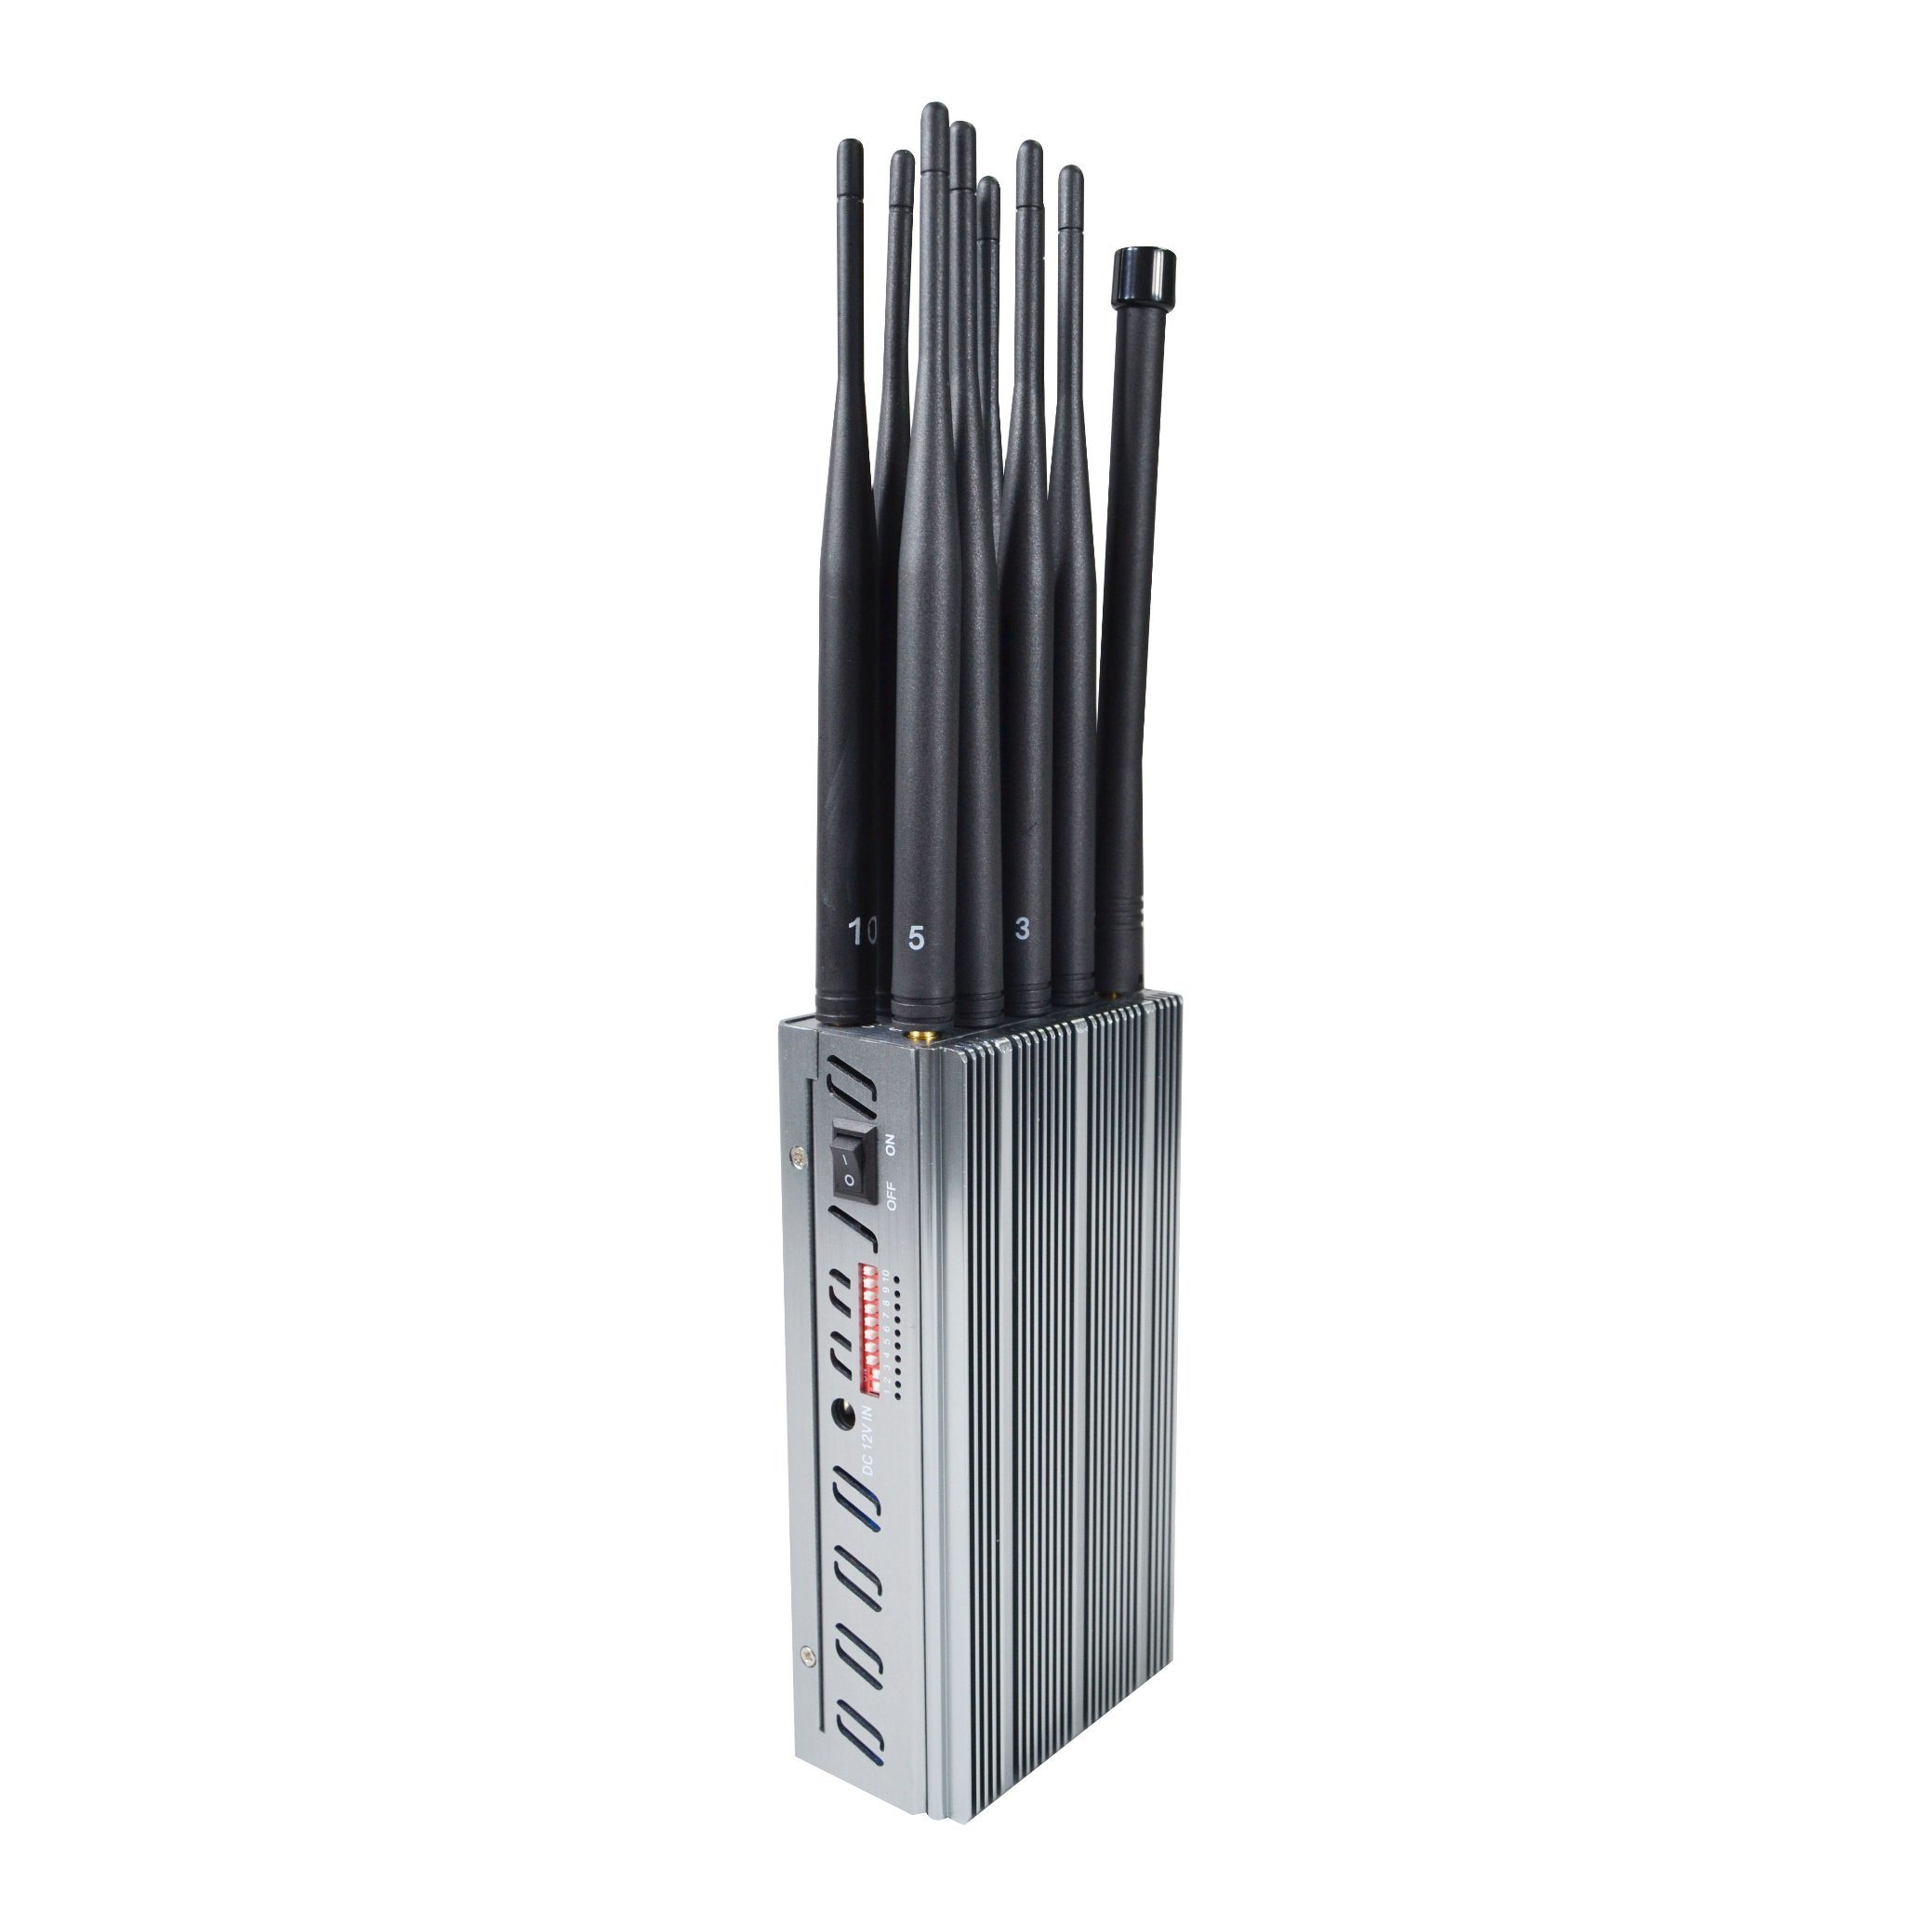 phone network jammer welding